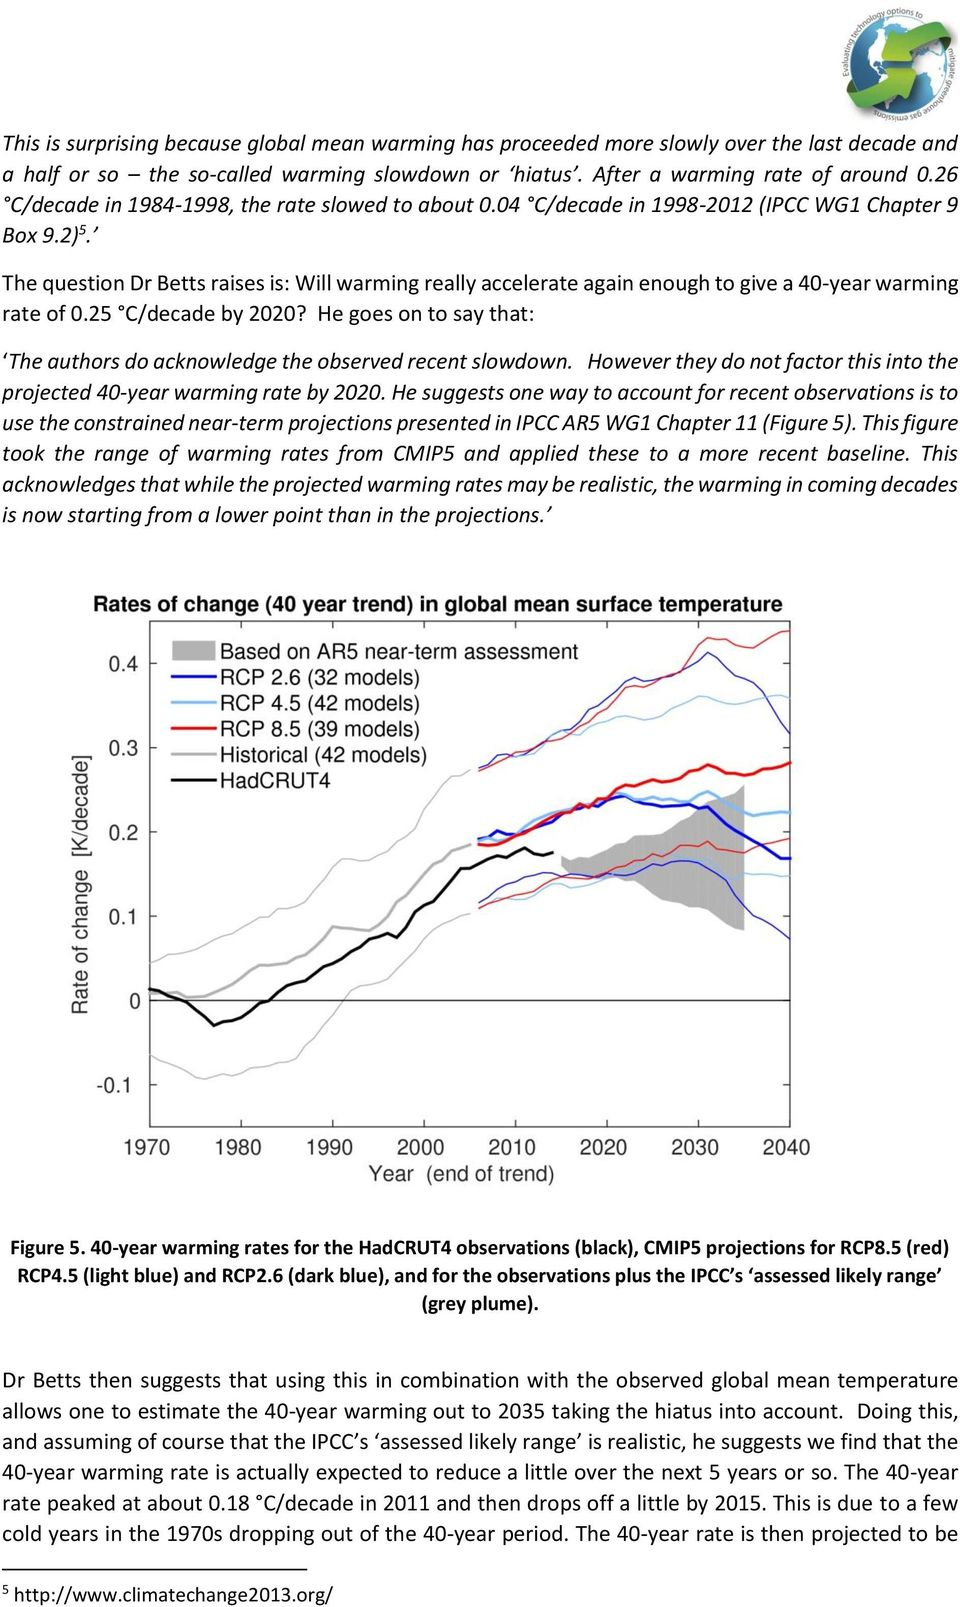 The question Dr Betts raises is: Will warming really accelerate again enough to give a 40-year warming rate of 0.25 C/decade by 2020?